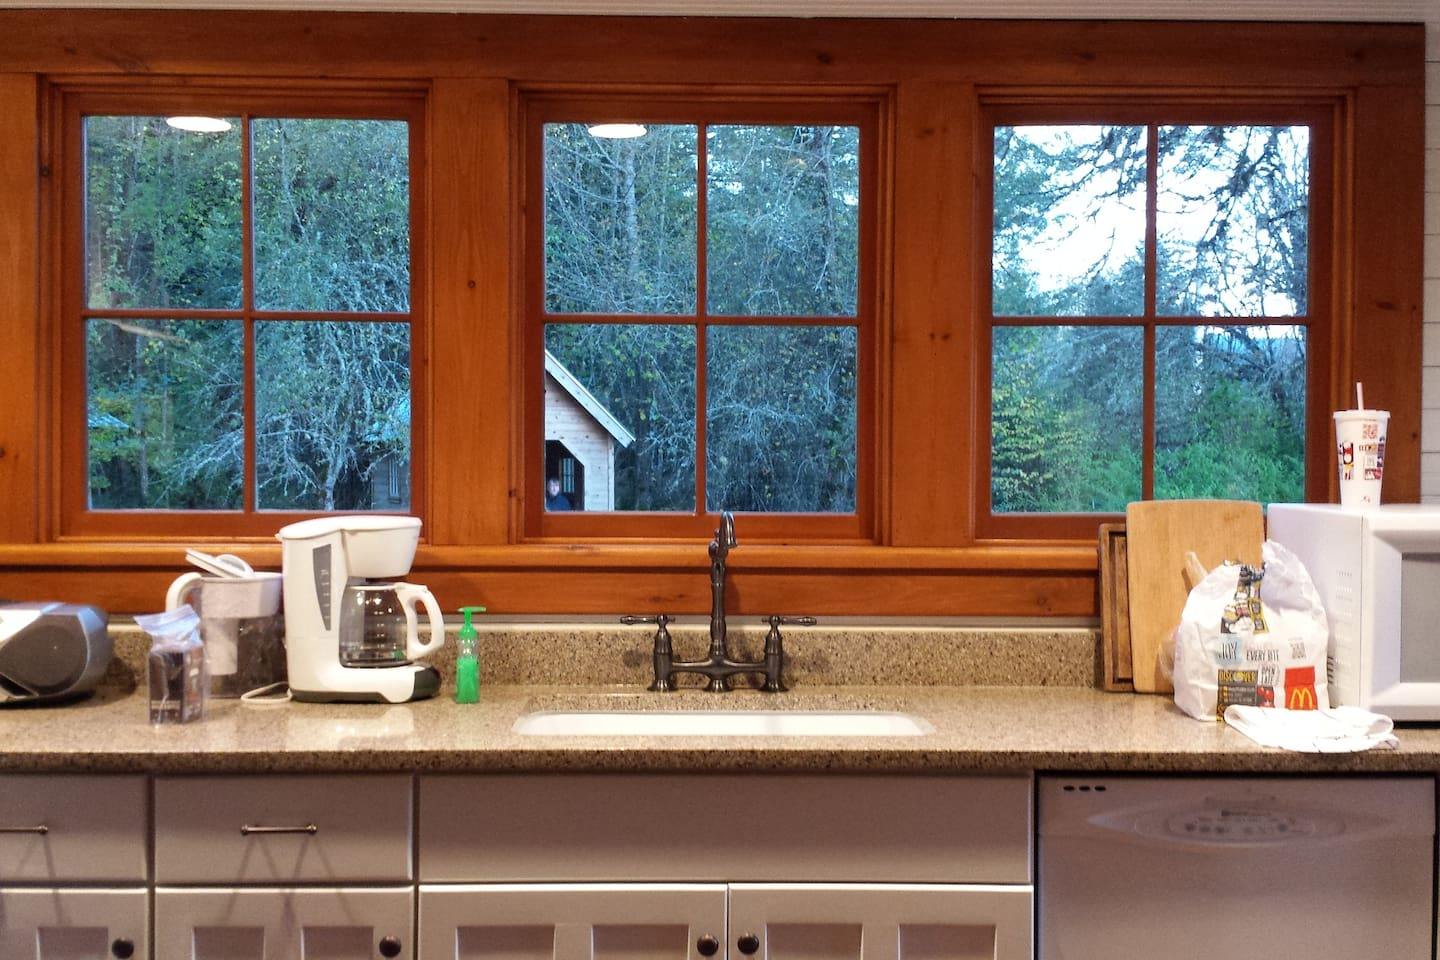 View looking toward a bank of windows in the kitchen